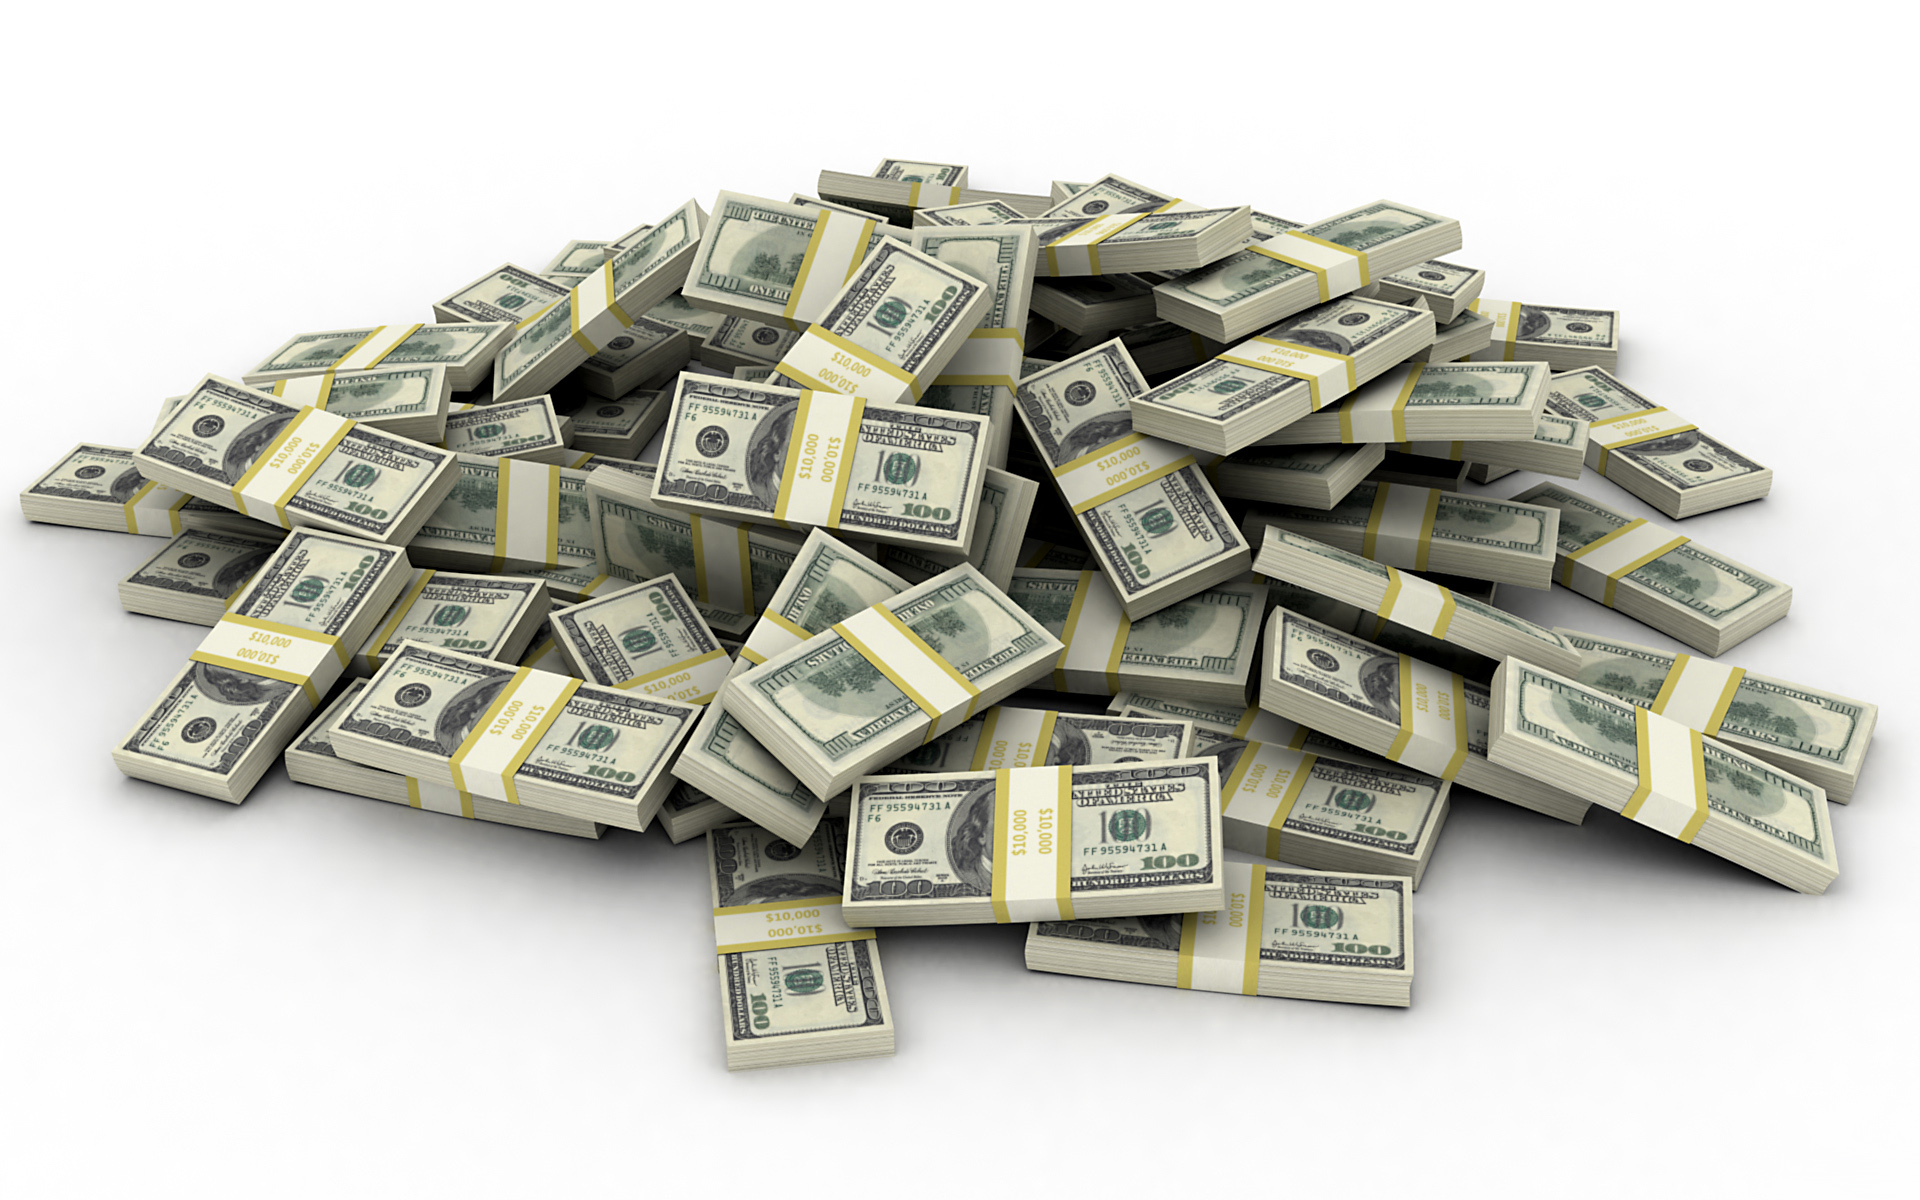 Do you win real money with cash frenzy